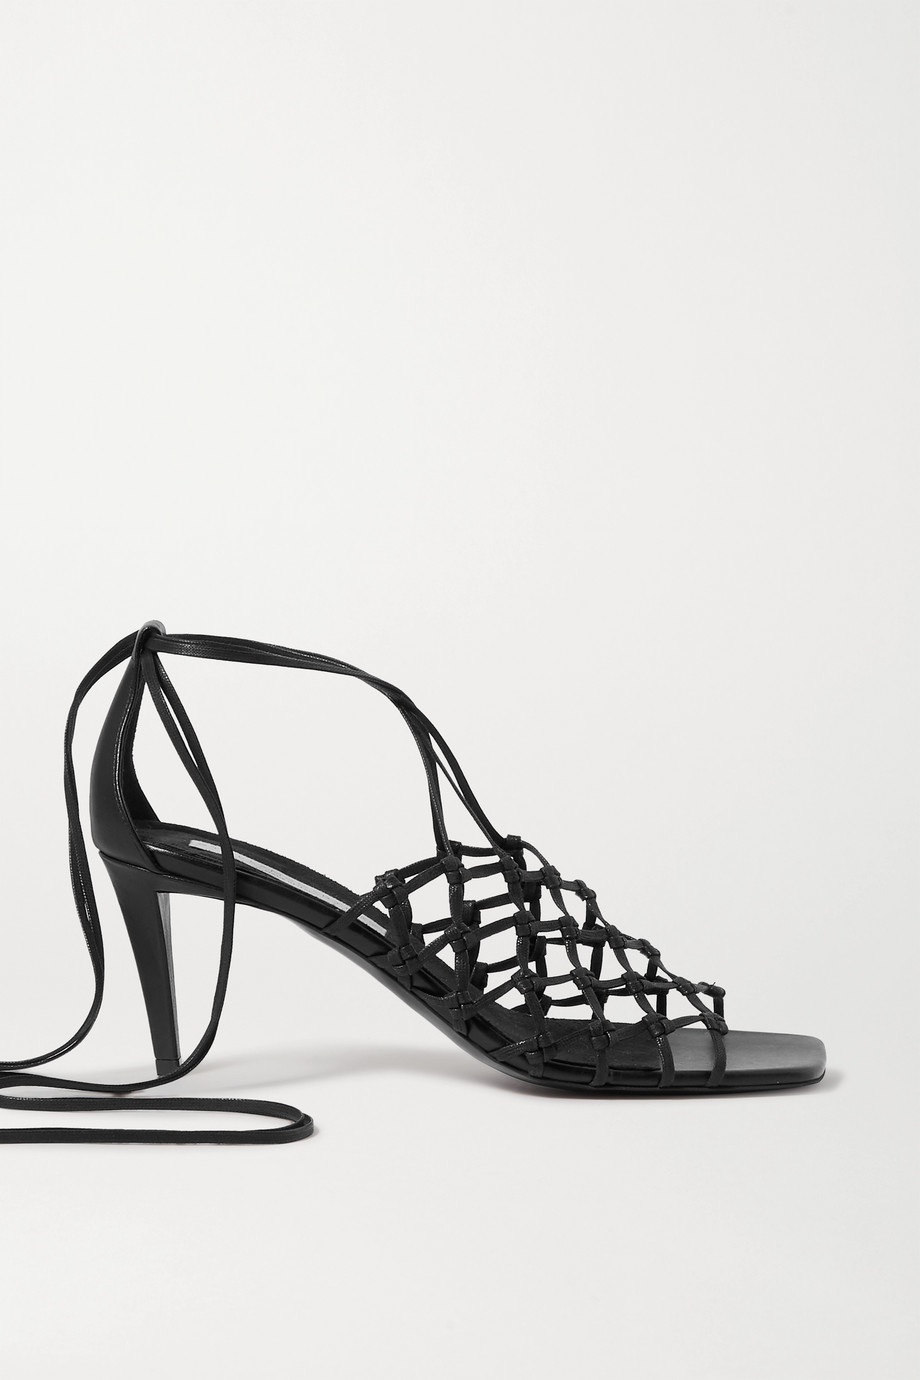 Stella McCartney Vegetarian leather sandals